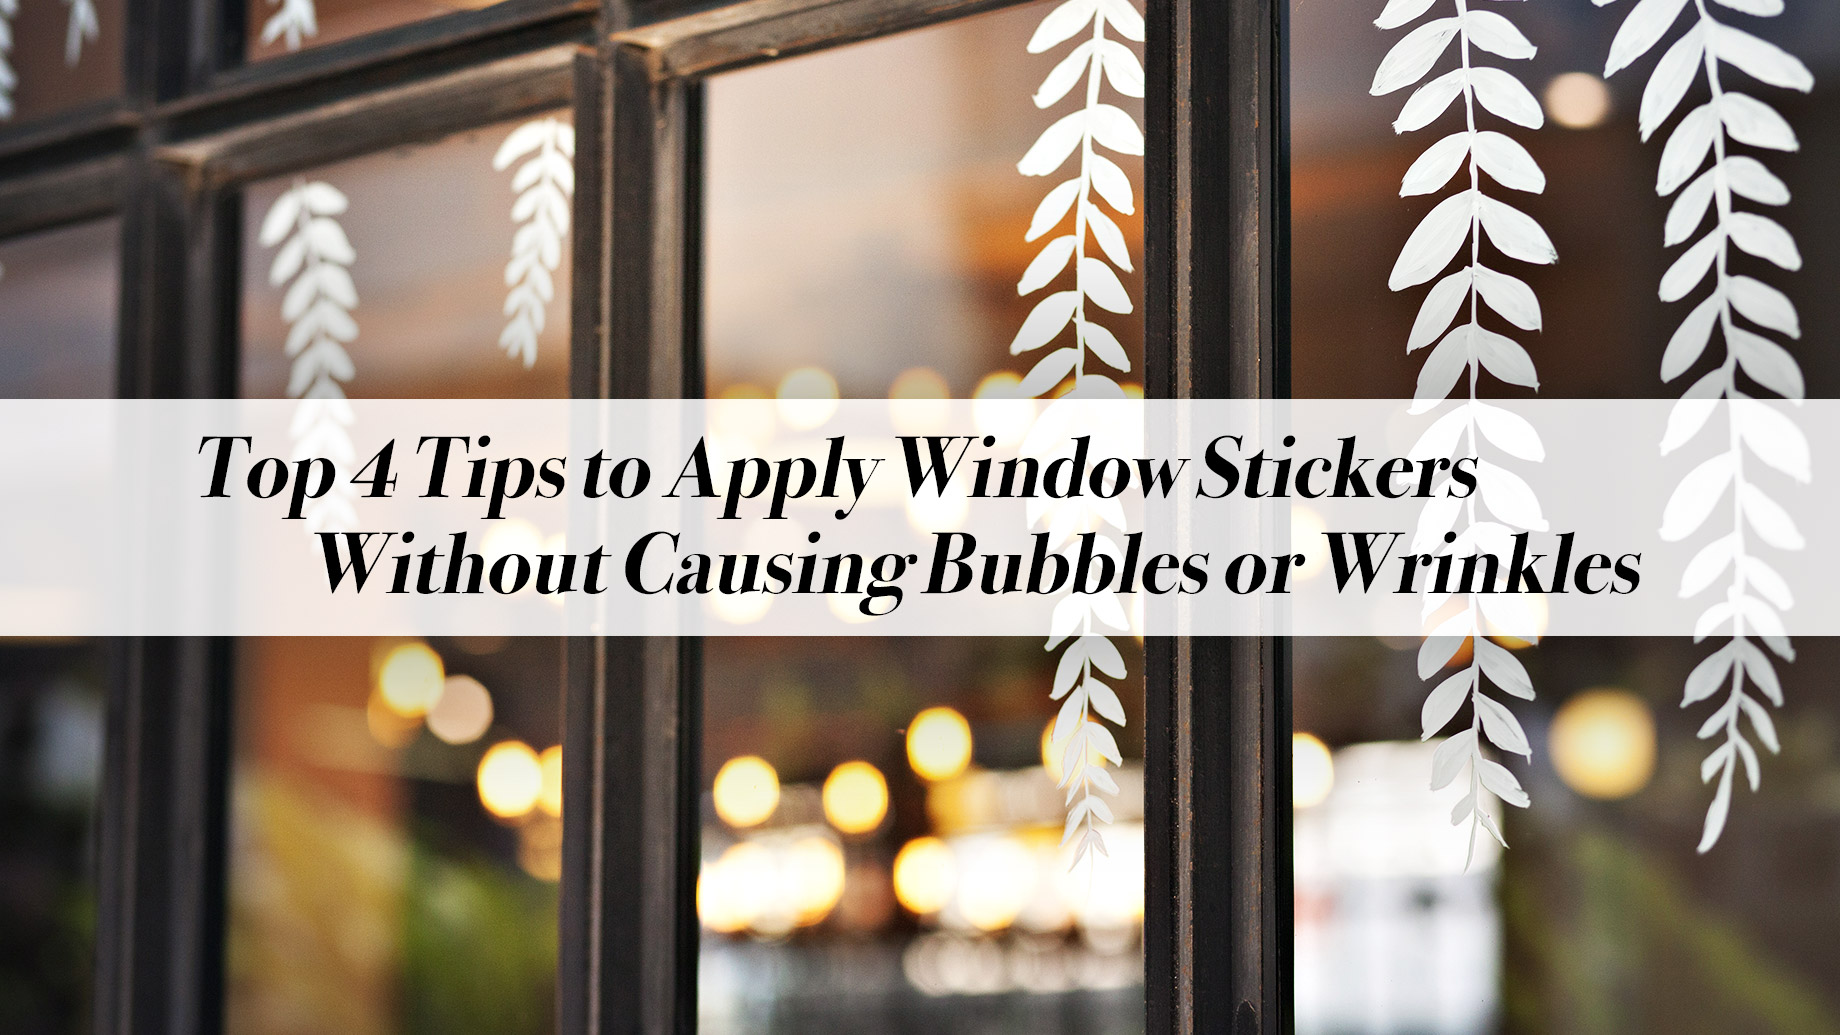 Top 4 Tips to Apply Window Stickers Without Causing Bubbles or Wrinkles